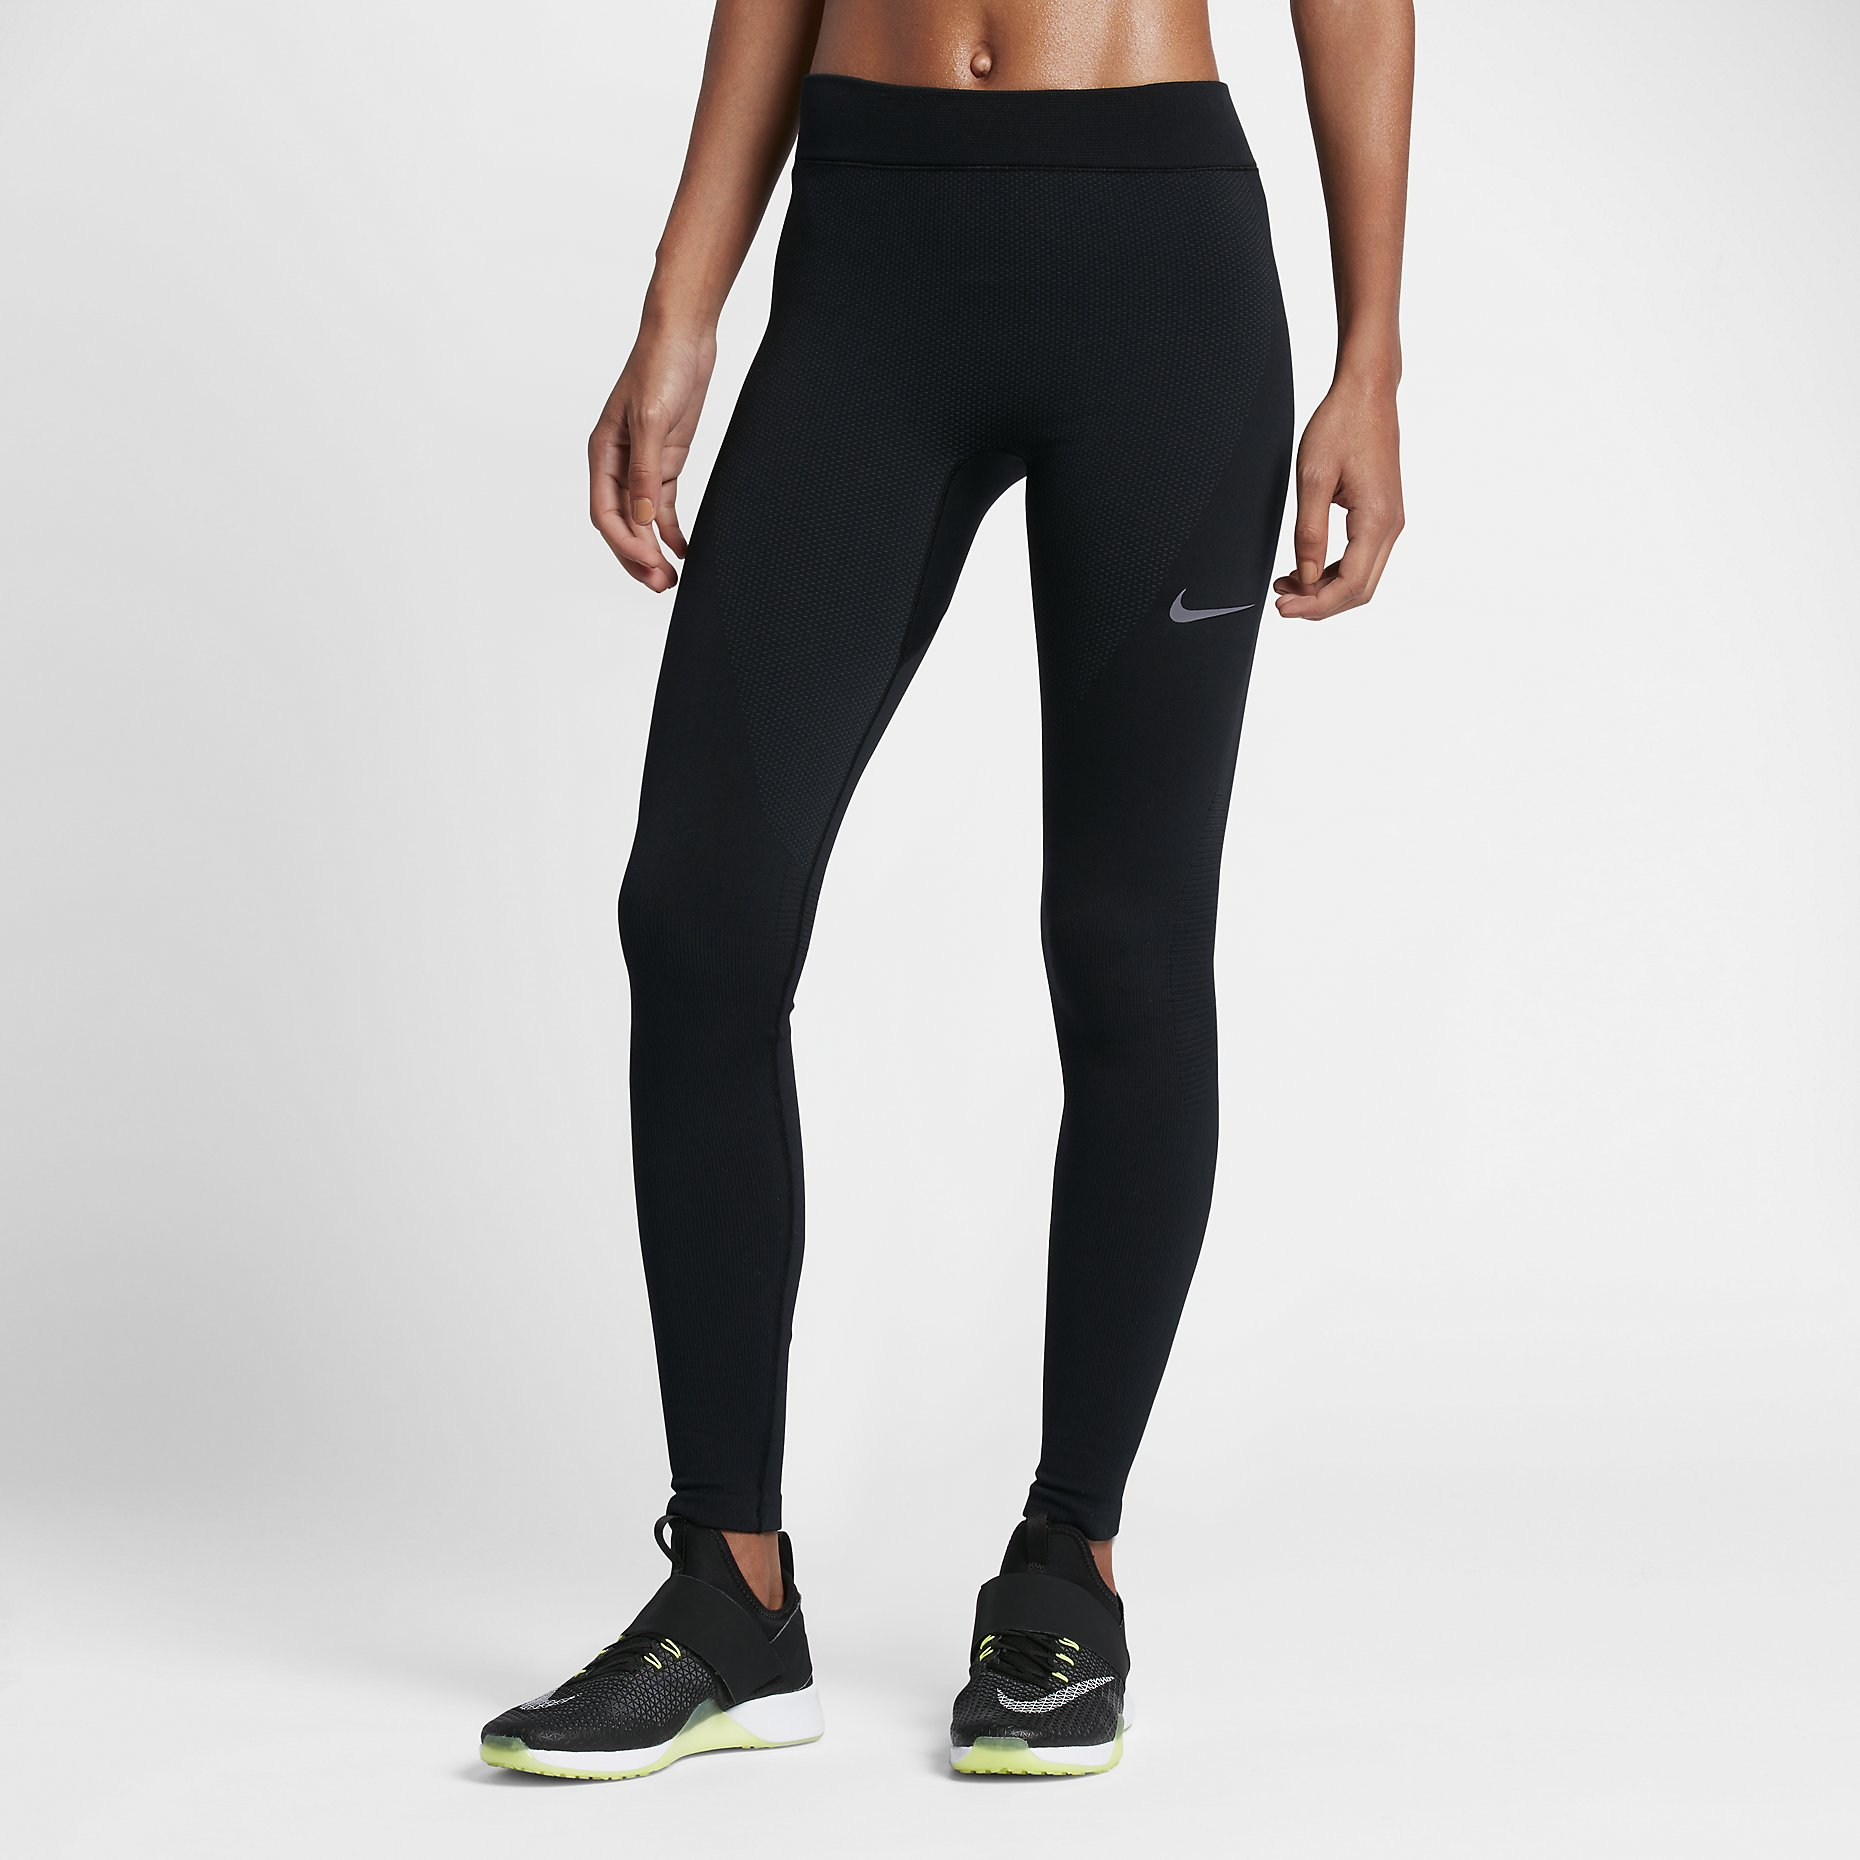 NIKE - HYPERWARM WOMENS TRAINING TIGHTS